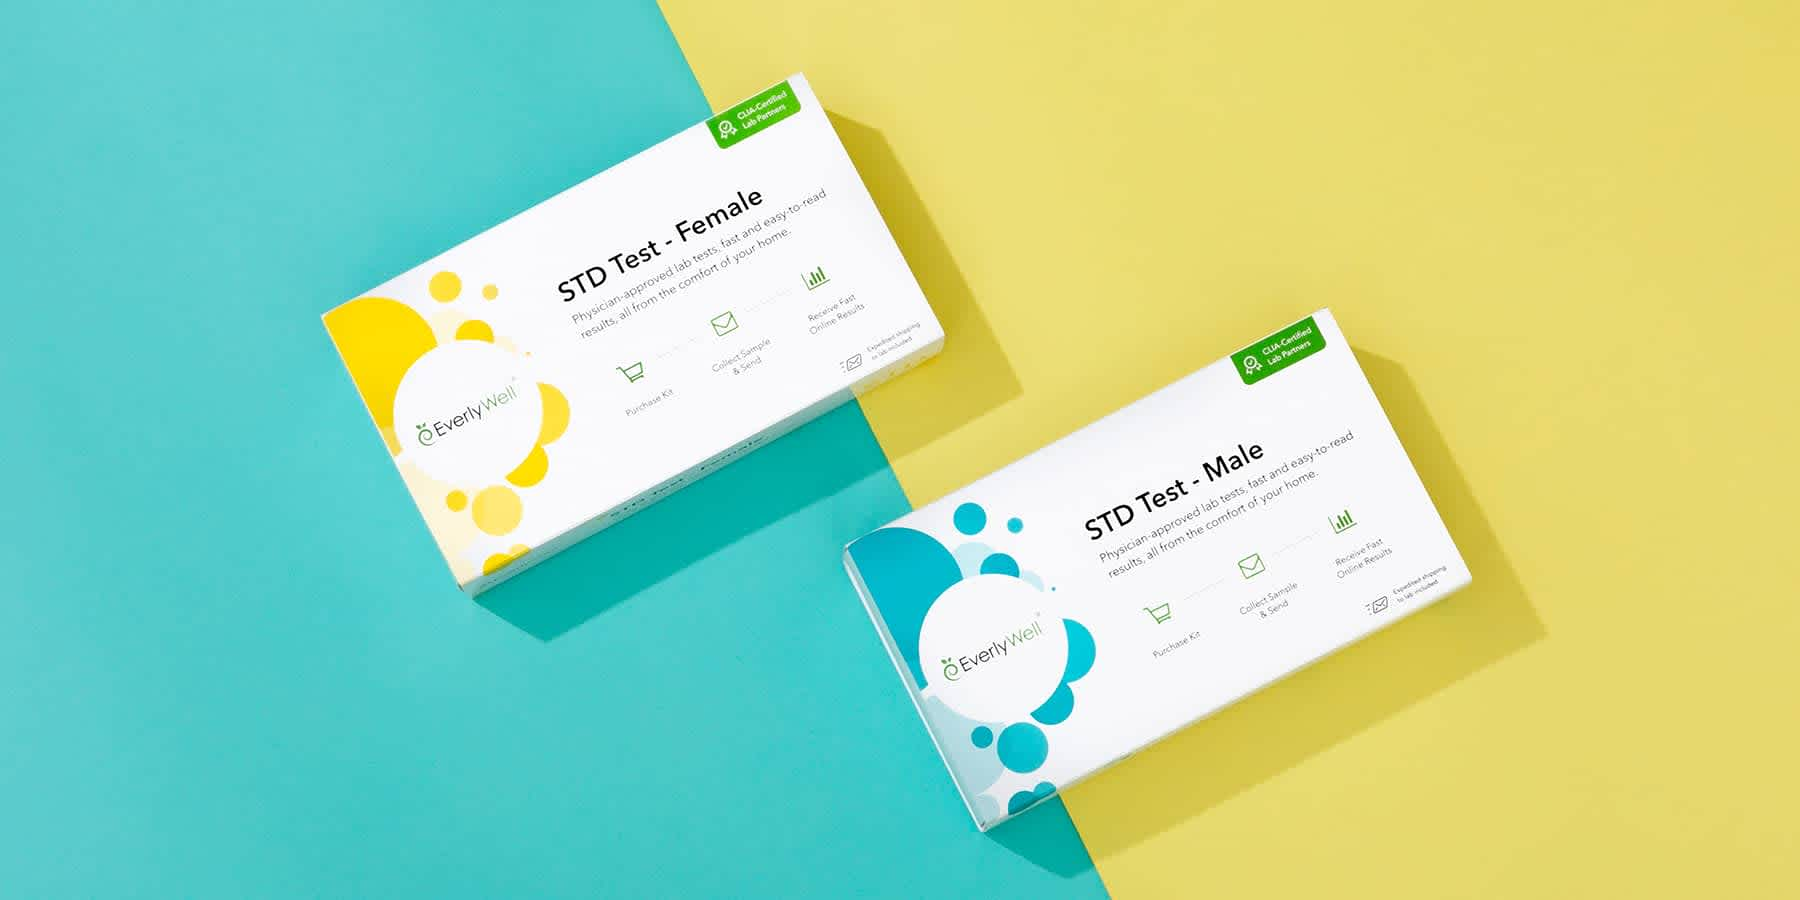 7 Best At-home Std Test Kits For Men And Women - Know